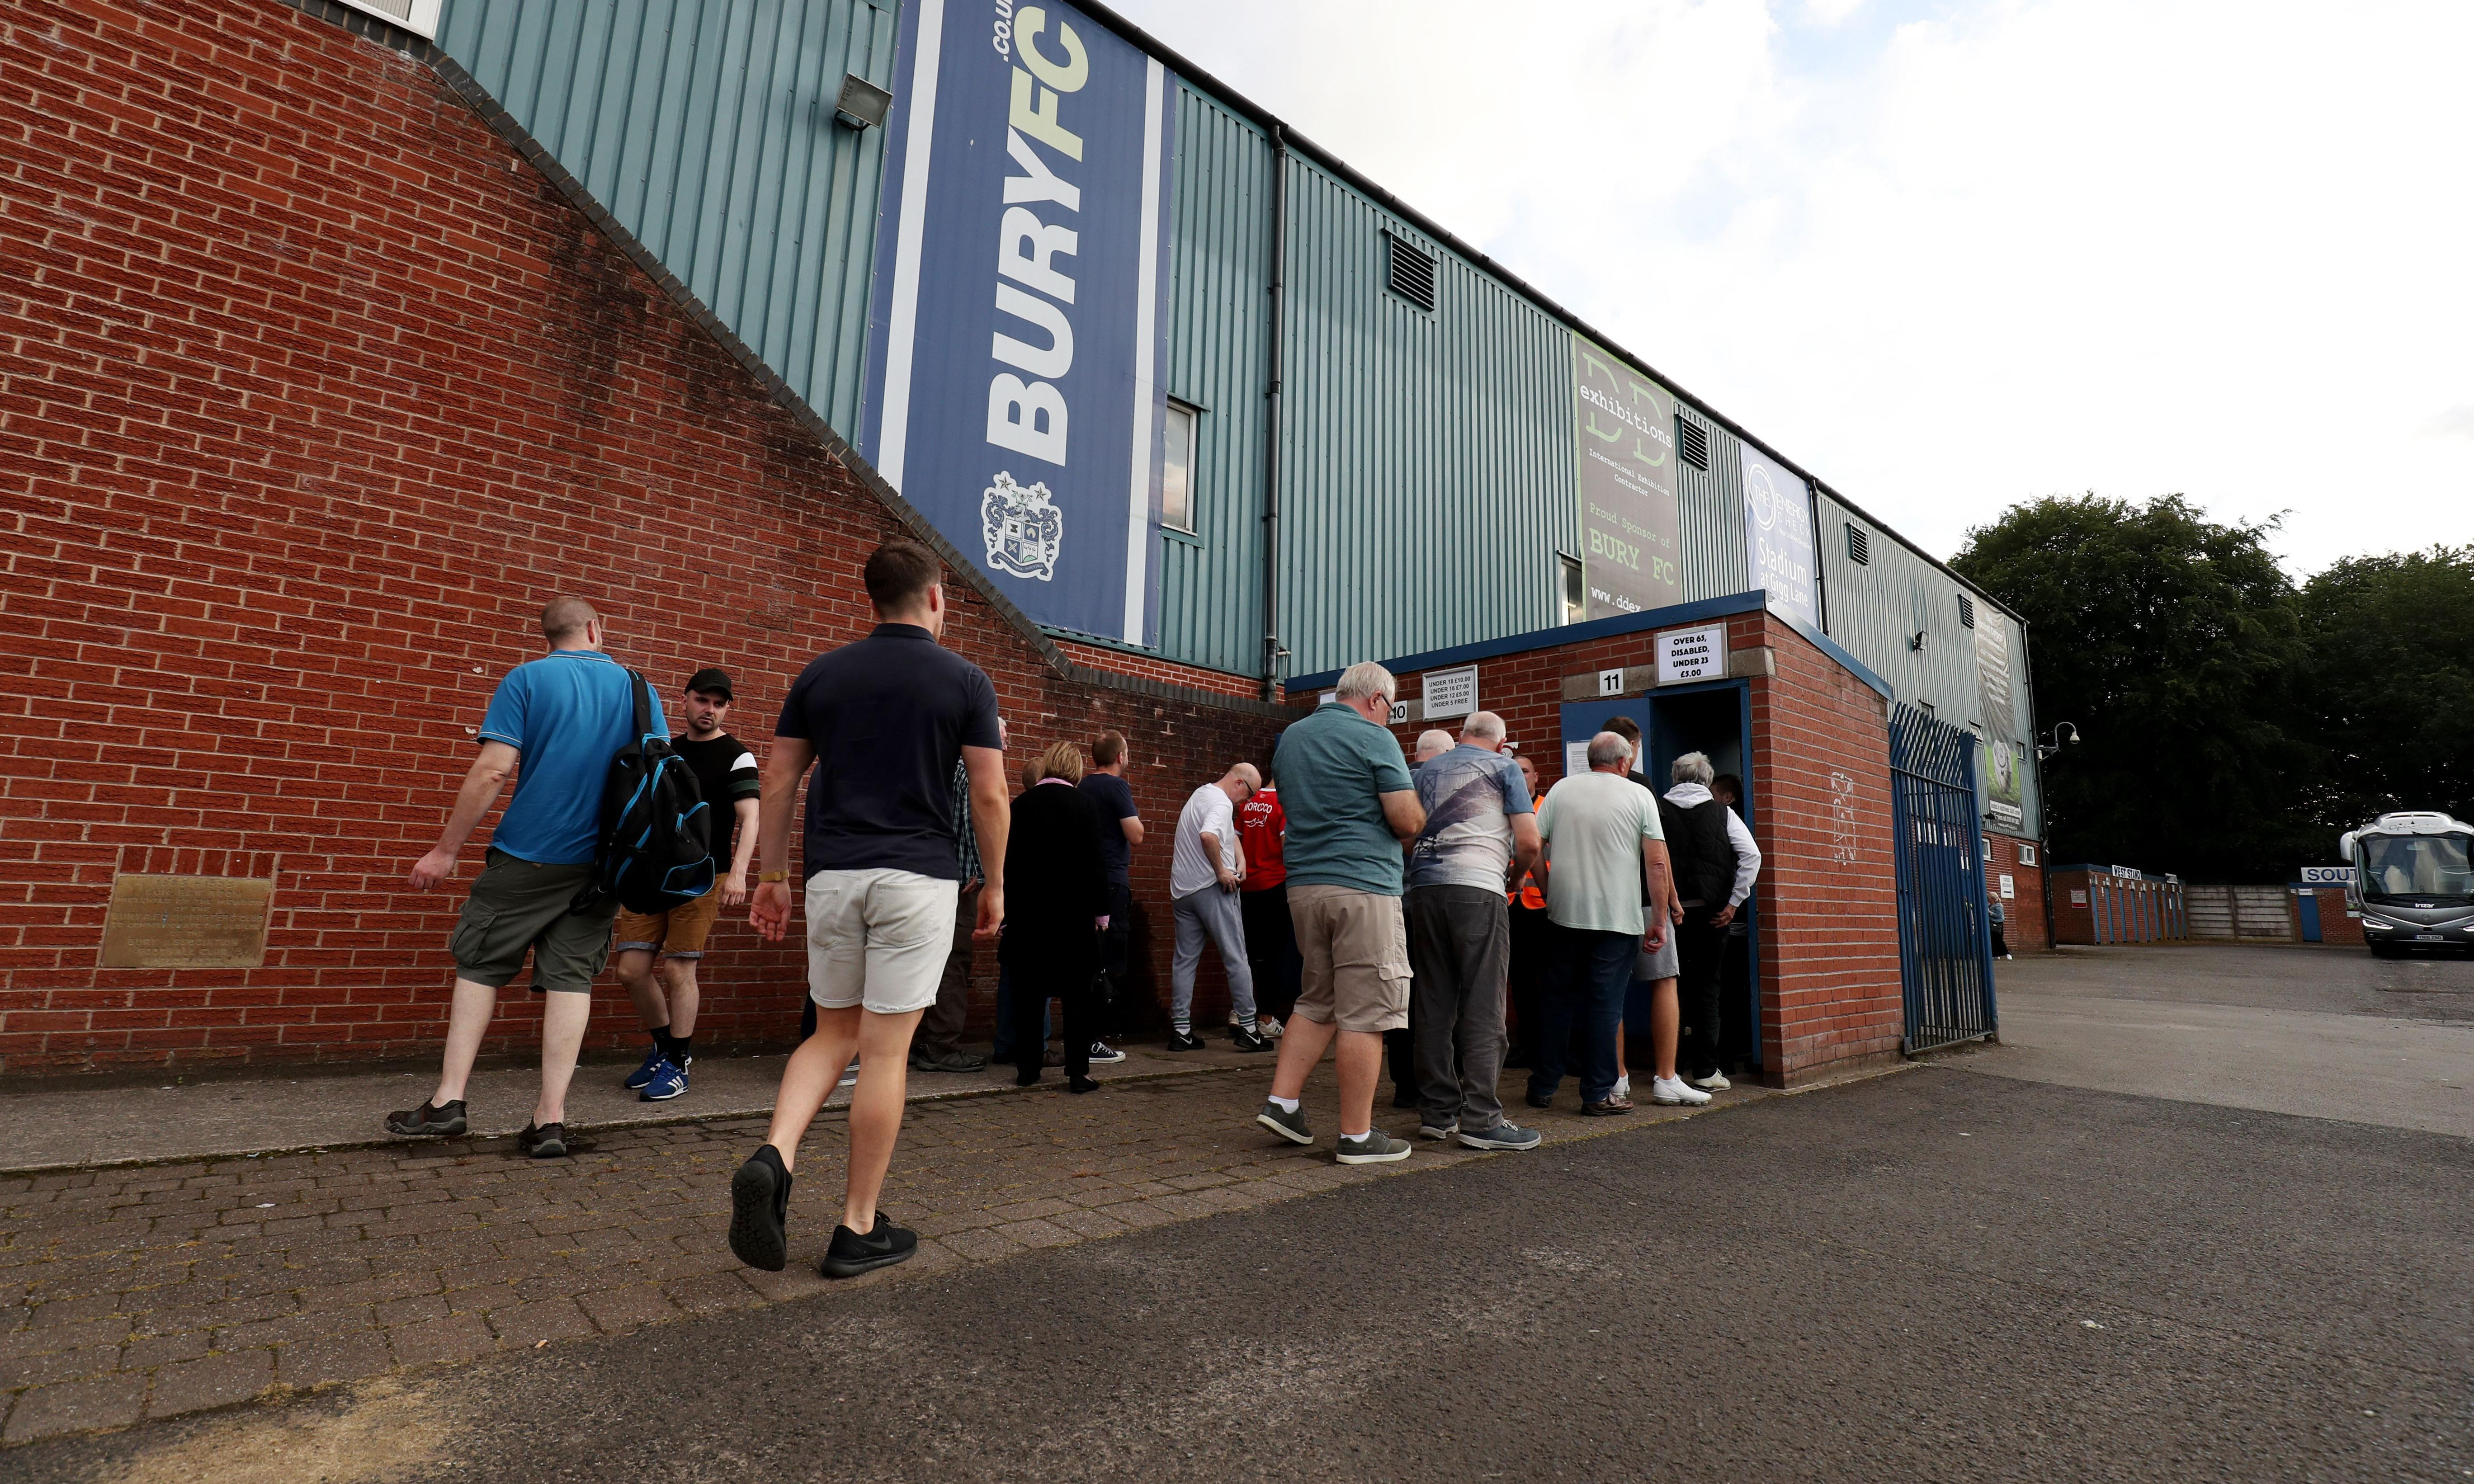 Bury are an extension of family, losing them would devastate a community